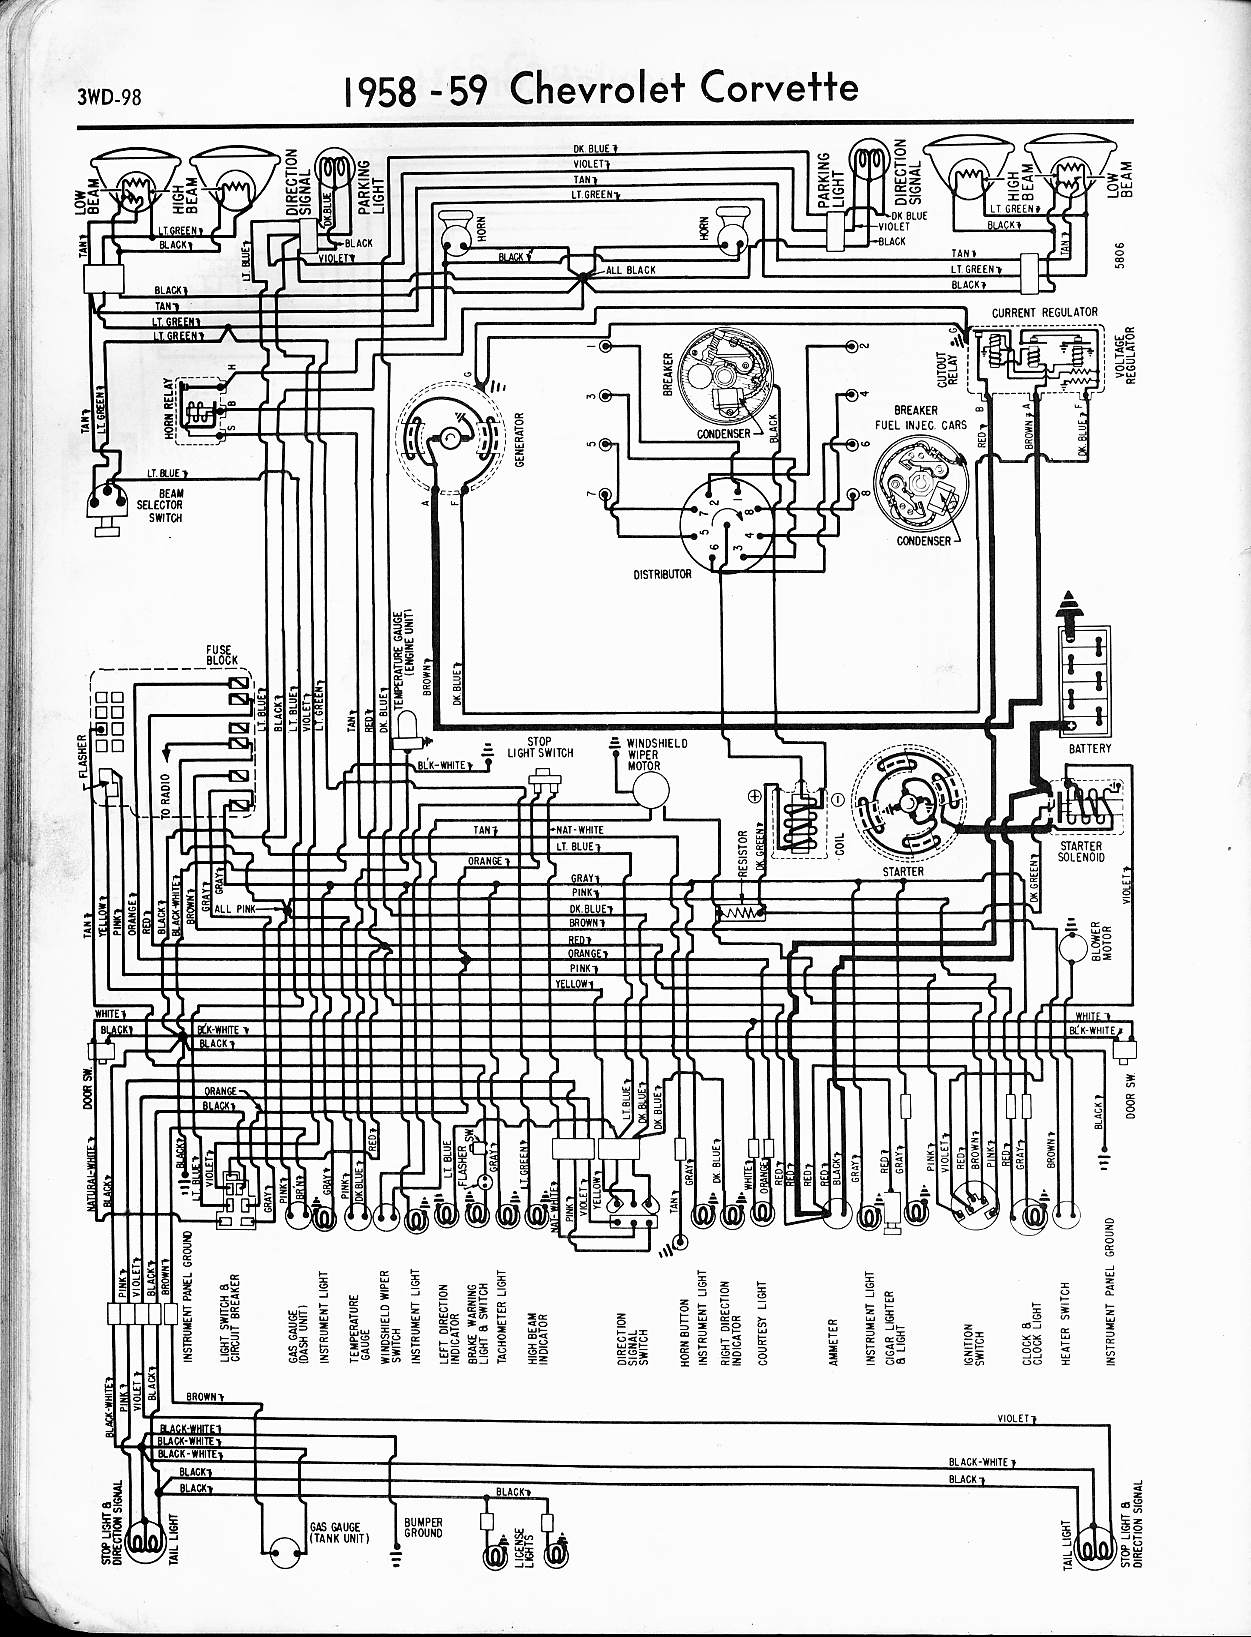 hight resolution of 57 chevy wiring diagram manual e book1957 chevy wiring diagram wiring diagram datasource57 65 chevy wiring